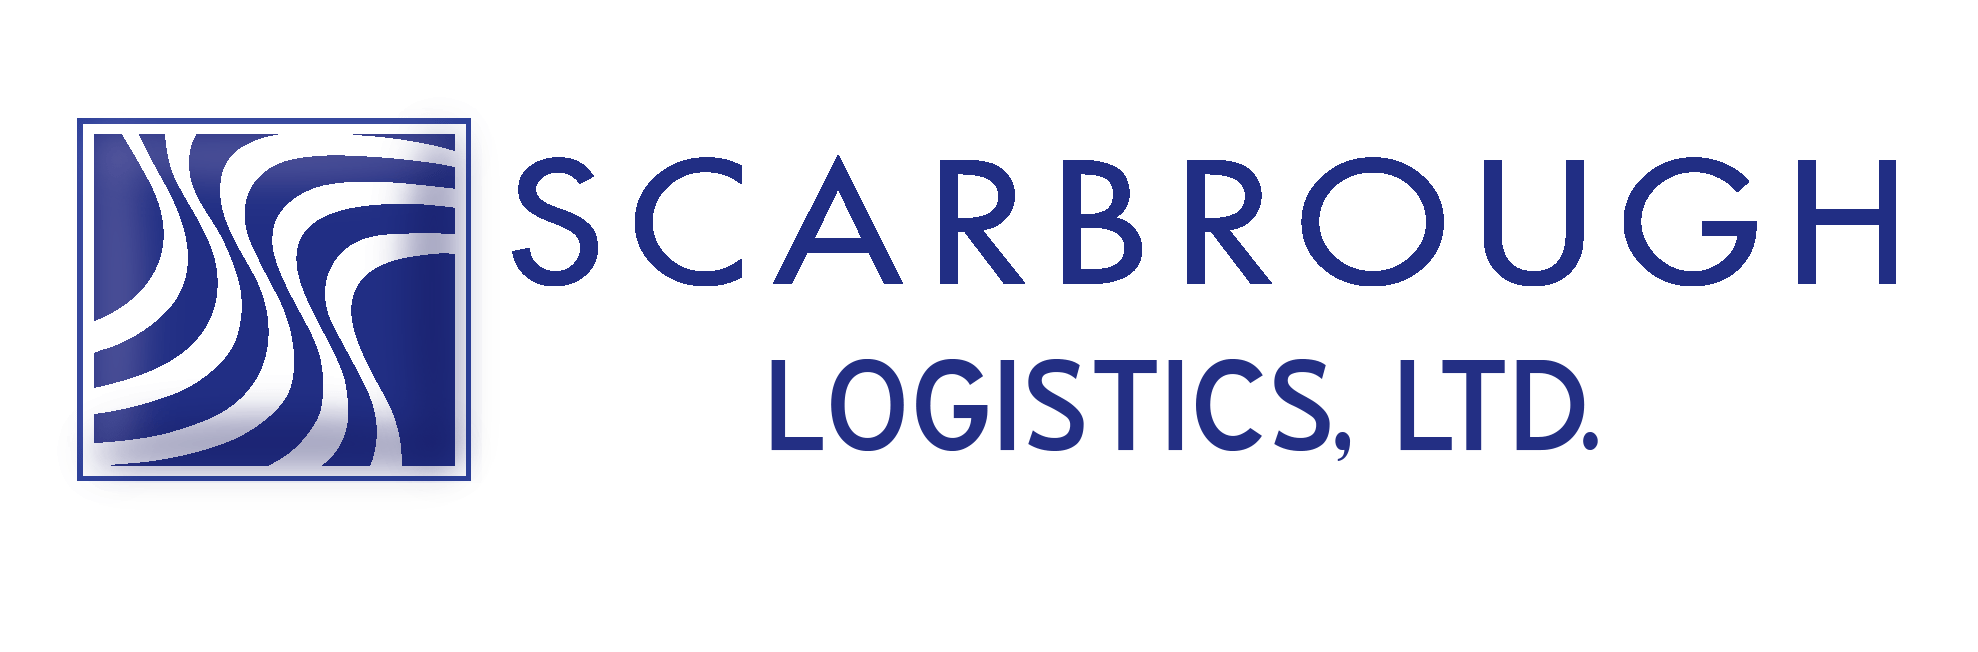 01 Scarbrough Logistics